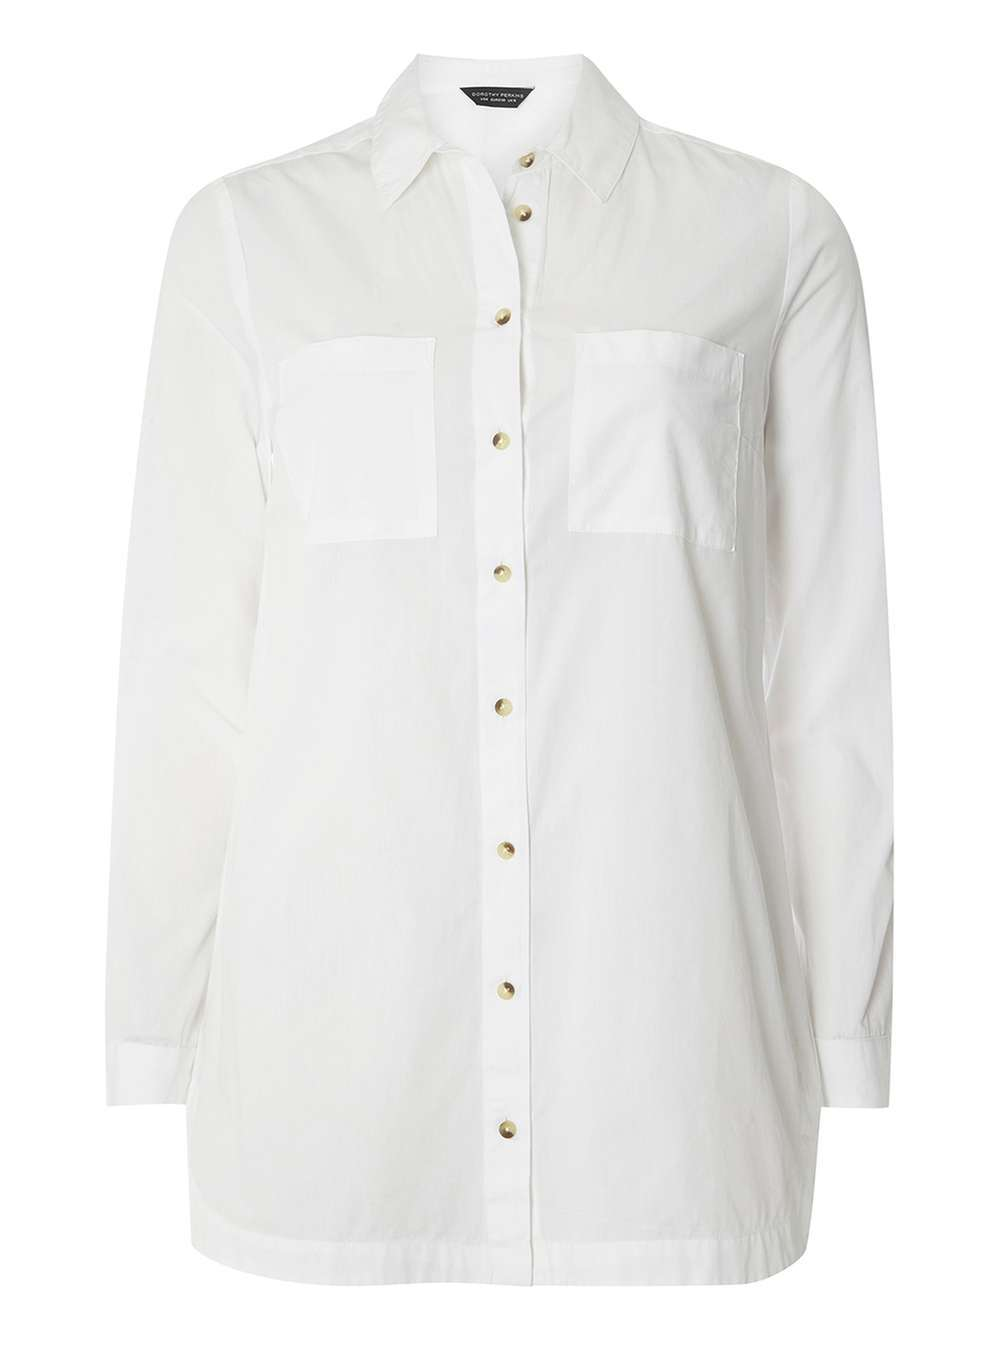 Womens White Longline Poplin Shirt White - neckline: shirt collar/peter pan/zip with opening; pattern: plain; length: below the bottom; style: shirt; predominant colour: white; occasions: casual, work, creative work; fibres: cotton - 100%; fit: body skimming; sleeve length: long sleeve; sleeve style: standard; texture group: cotton feel fabrics; pattern type: fabric; wardrobe: basic; season: a/w 2016